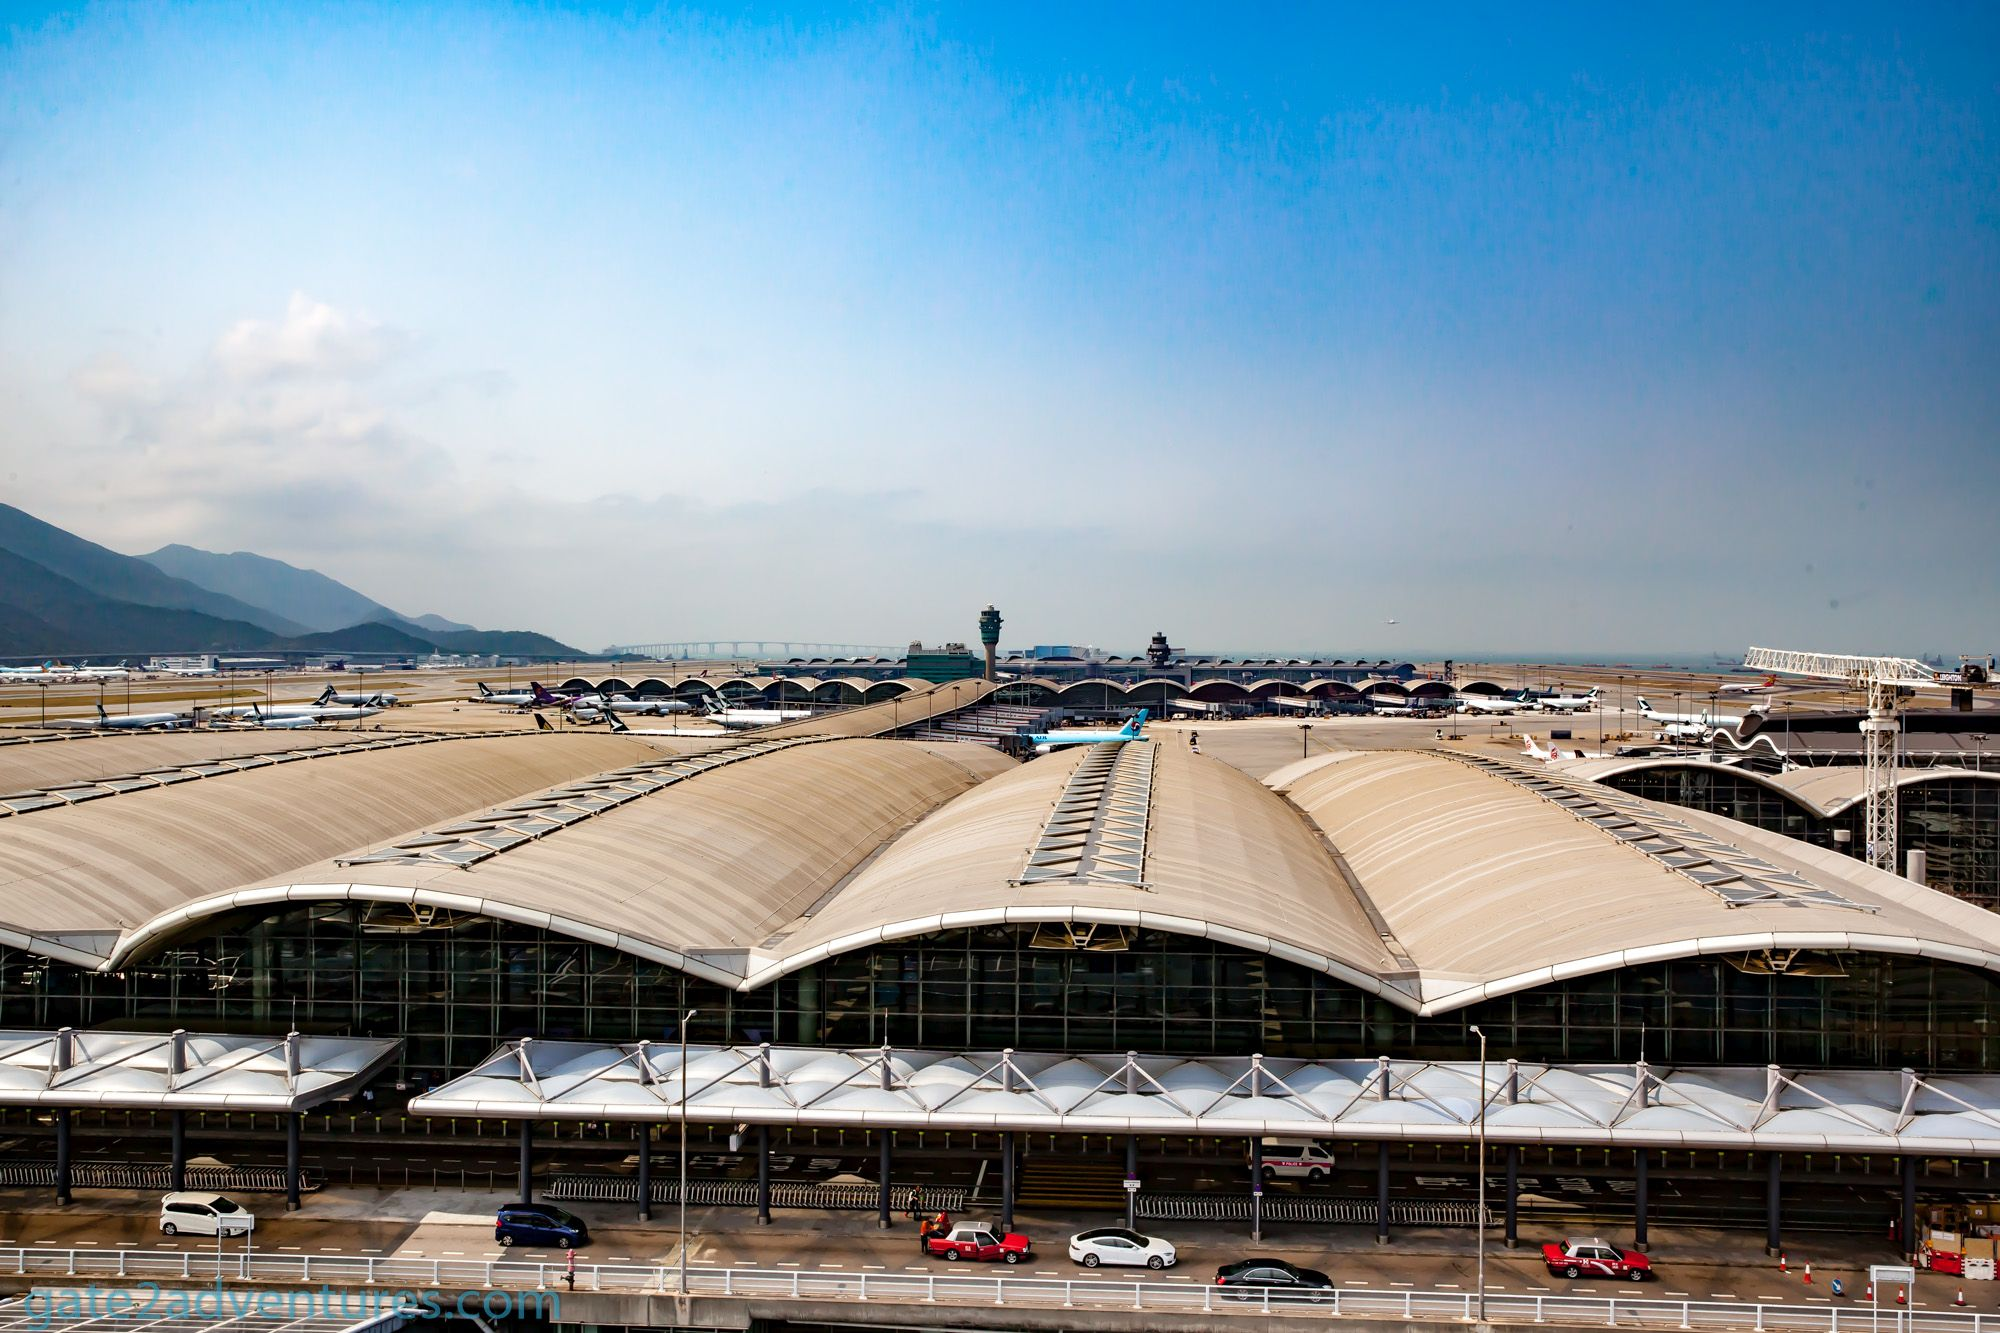 The Secret SkyDeck at Hong Kong International Airport